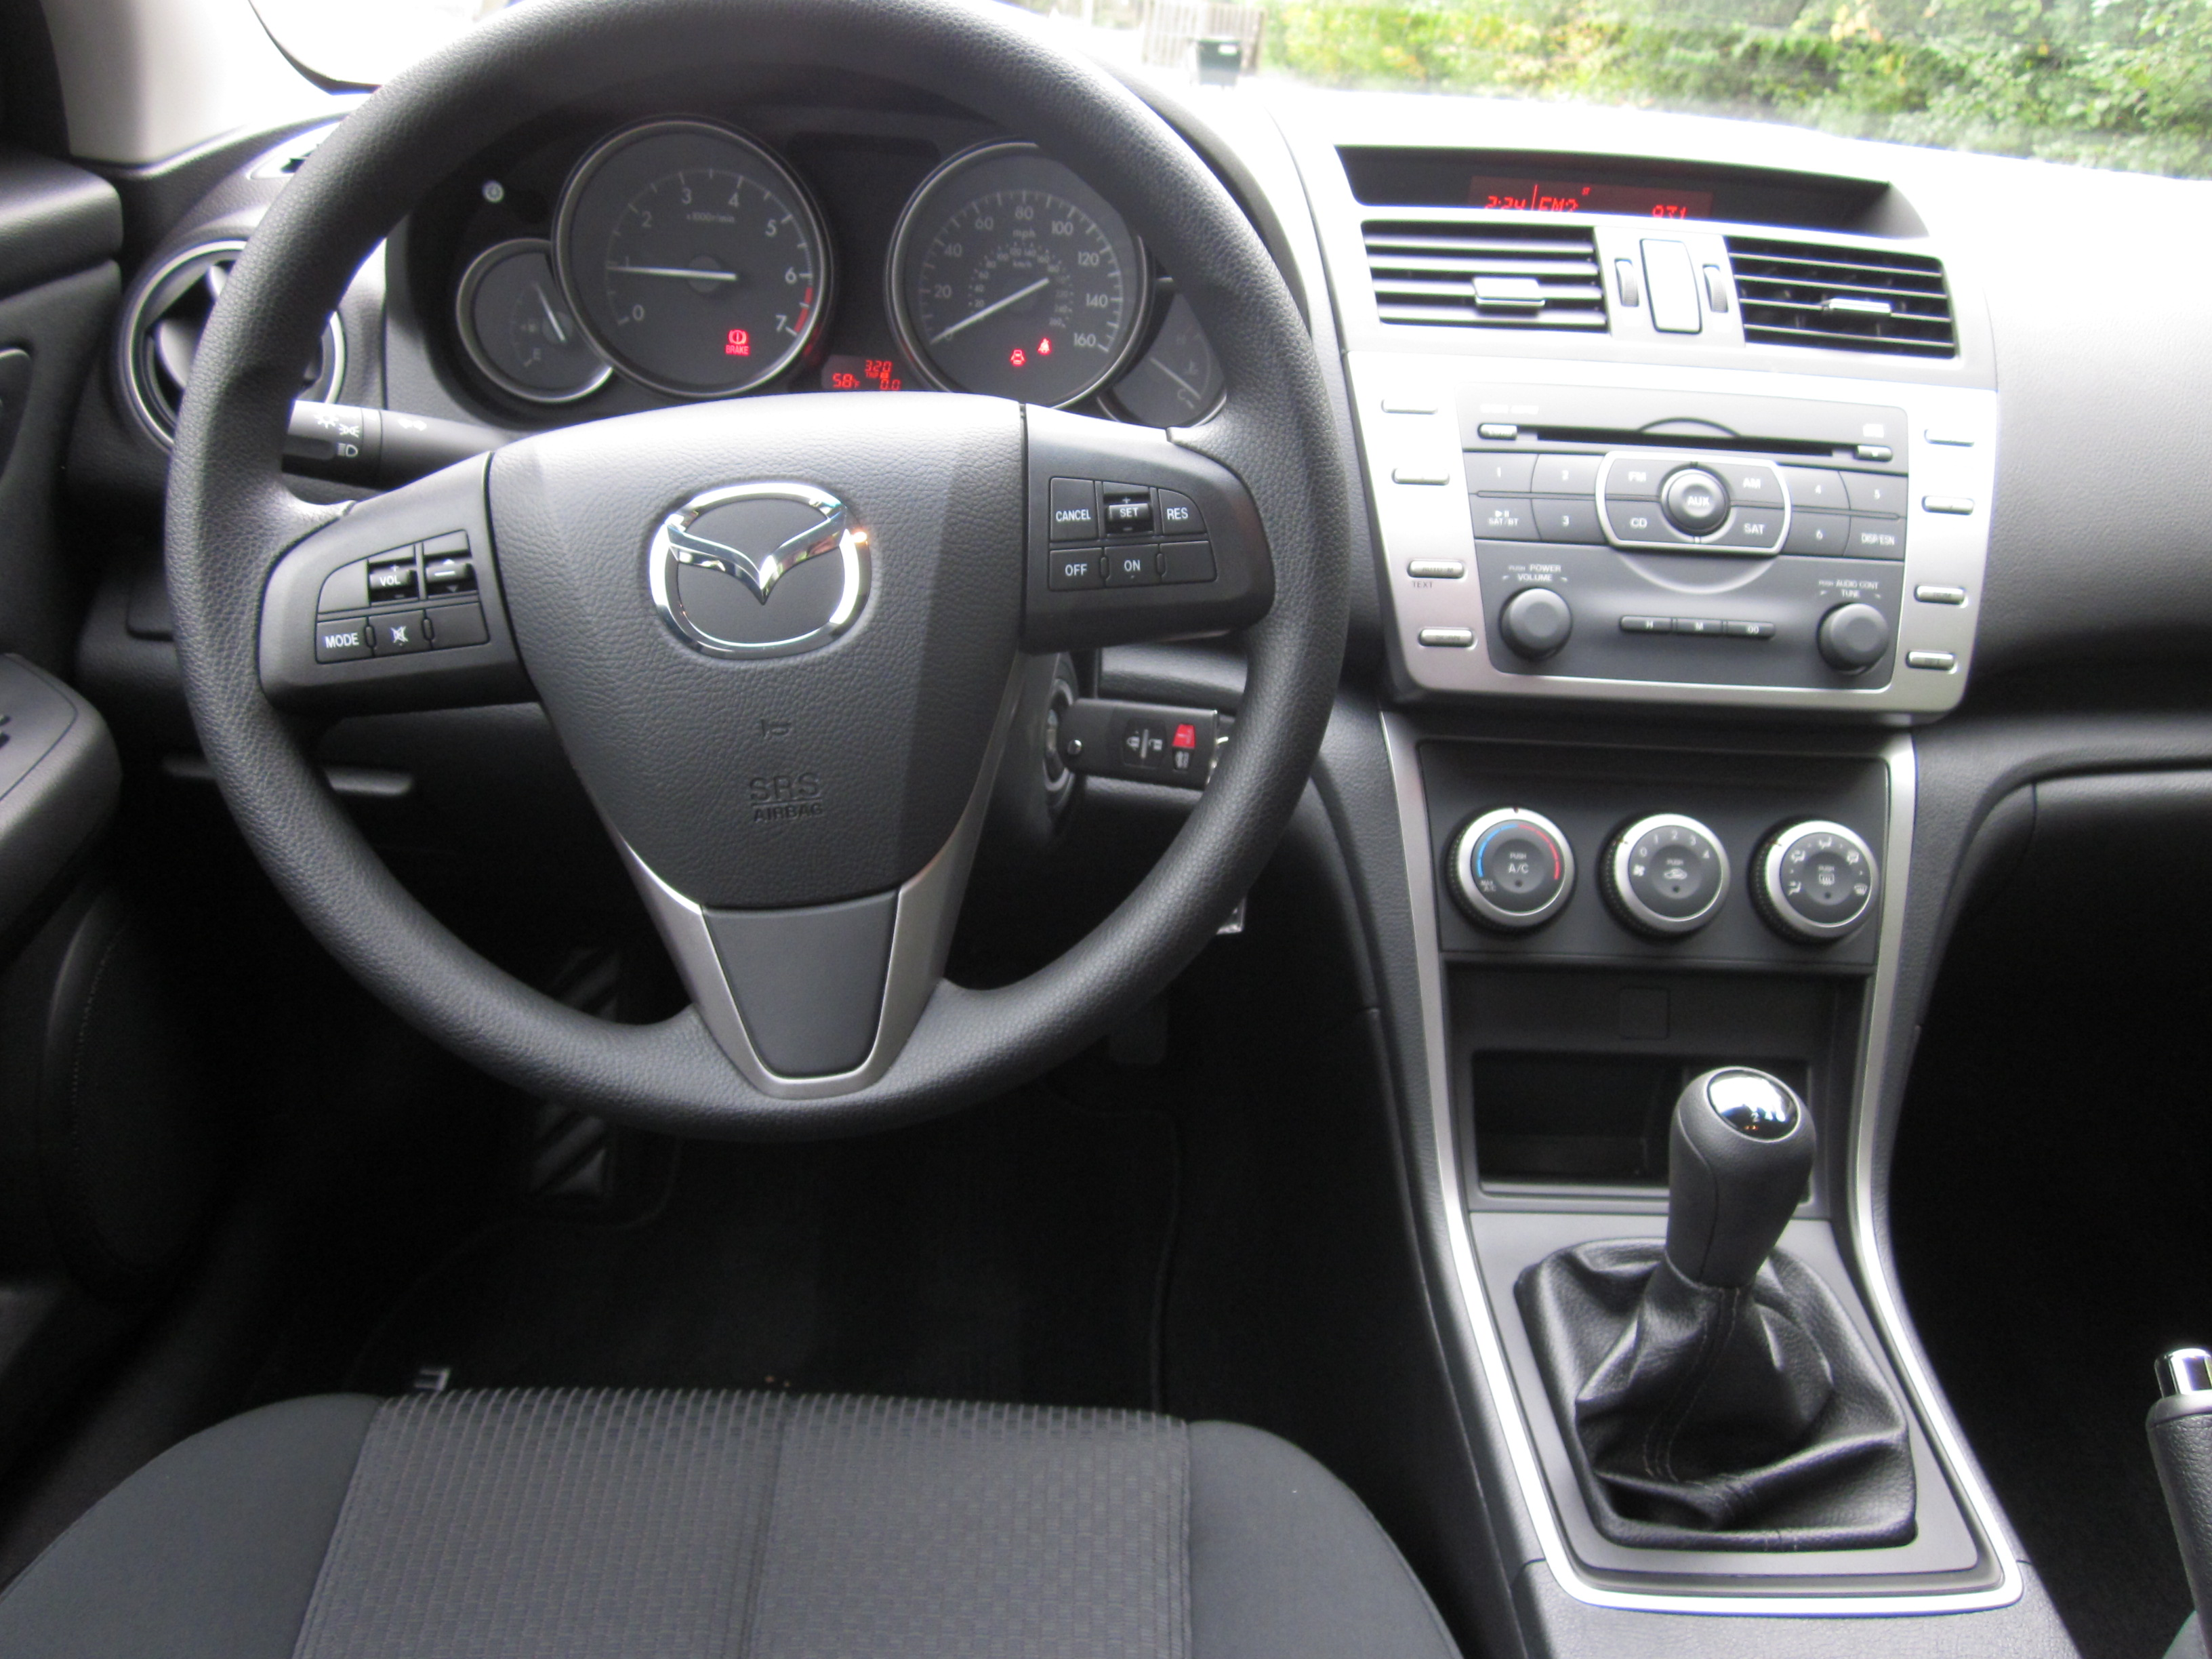 2012 Mazda6 Ride And Review By Larry Nutson